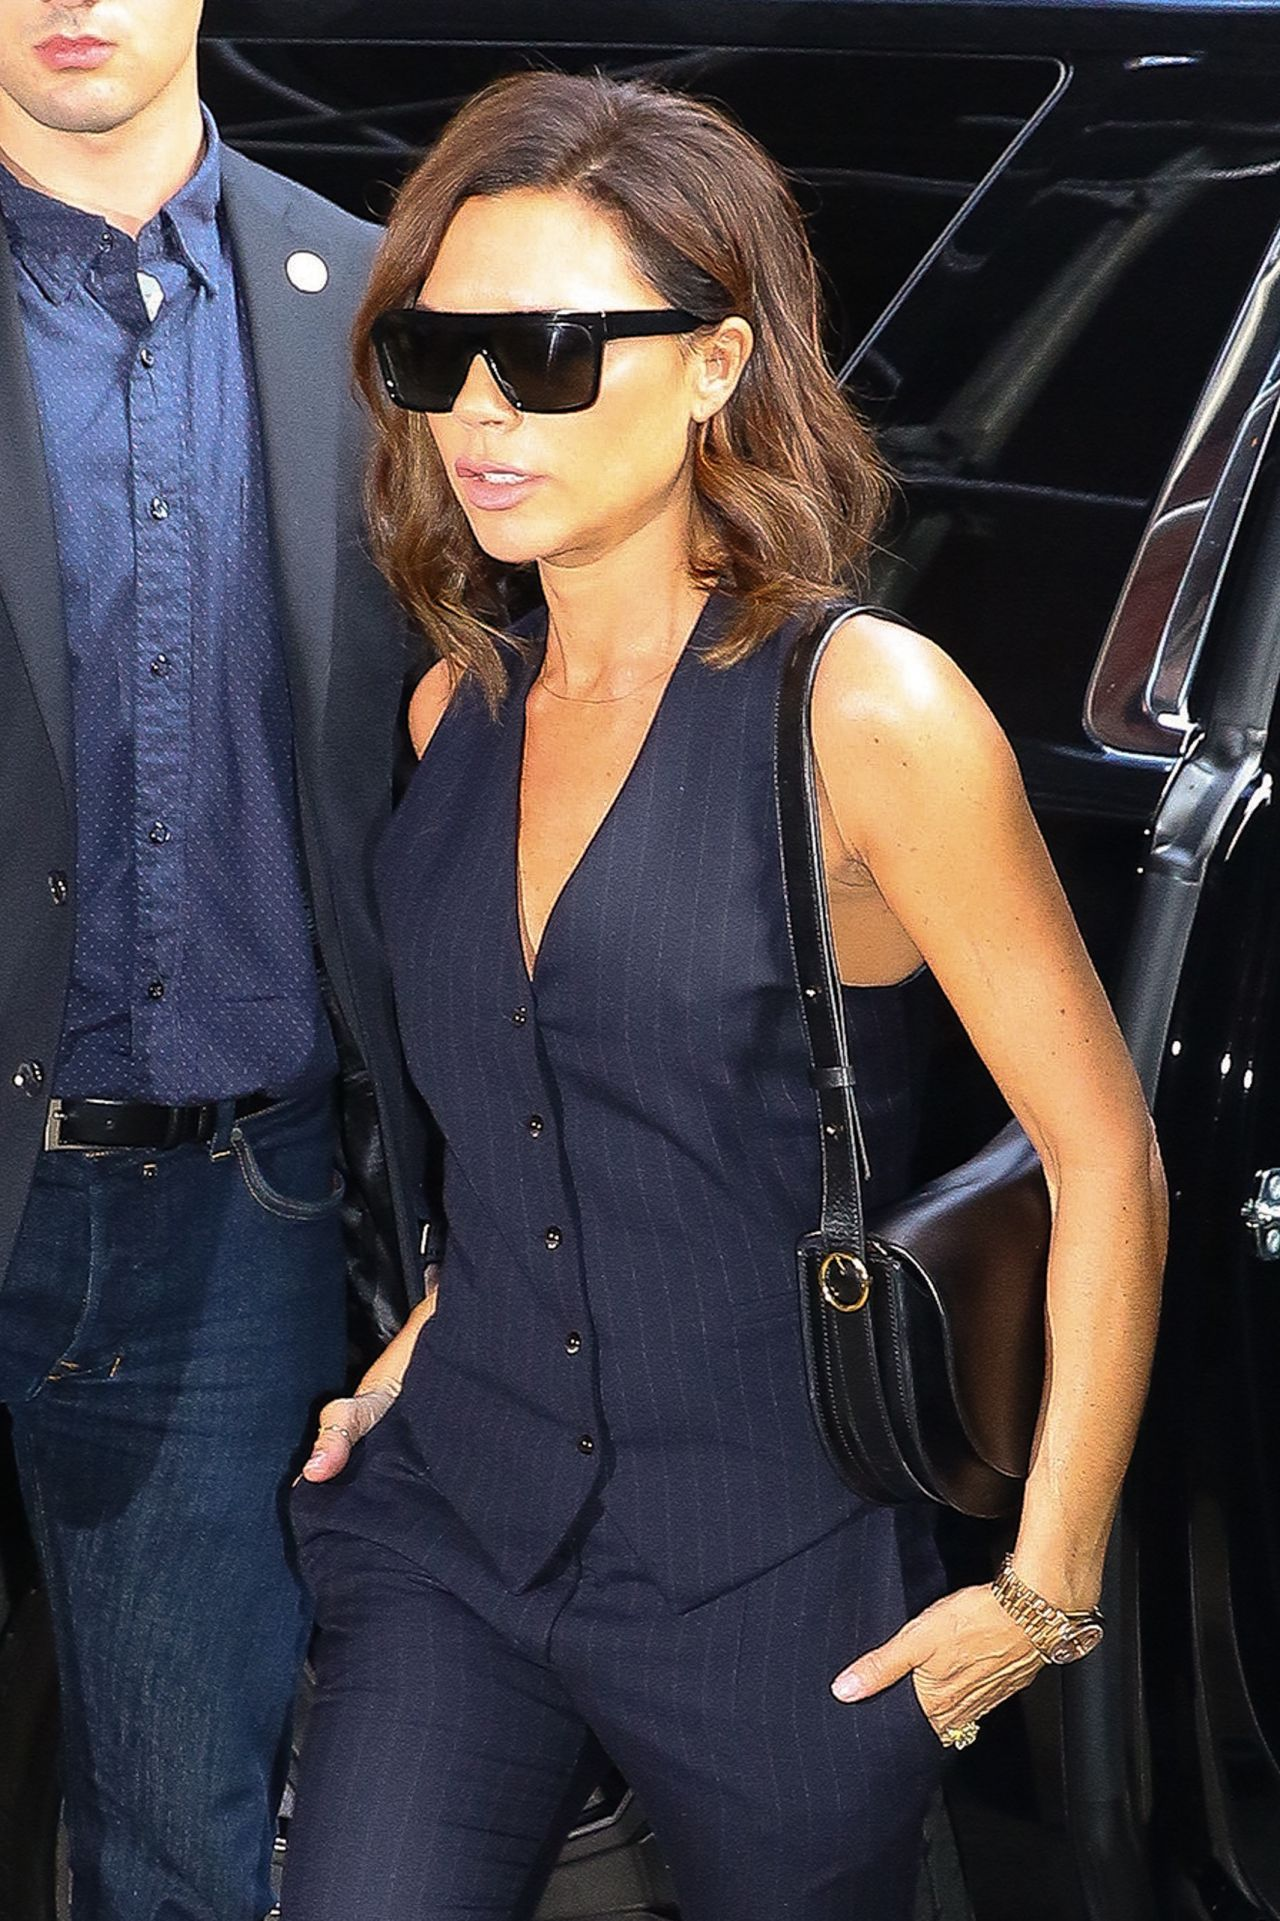 Victoria Beckham Leaving Her Hotel In New York City 06